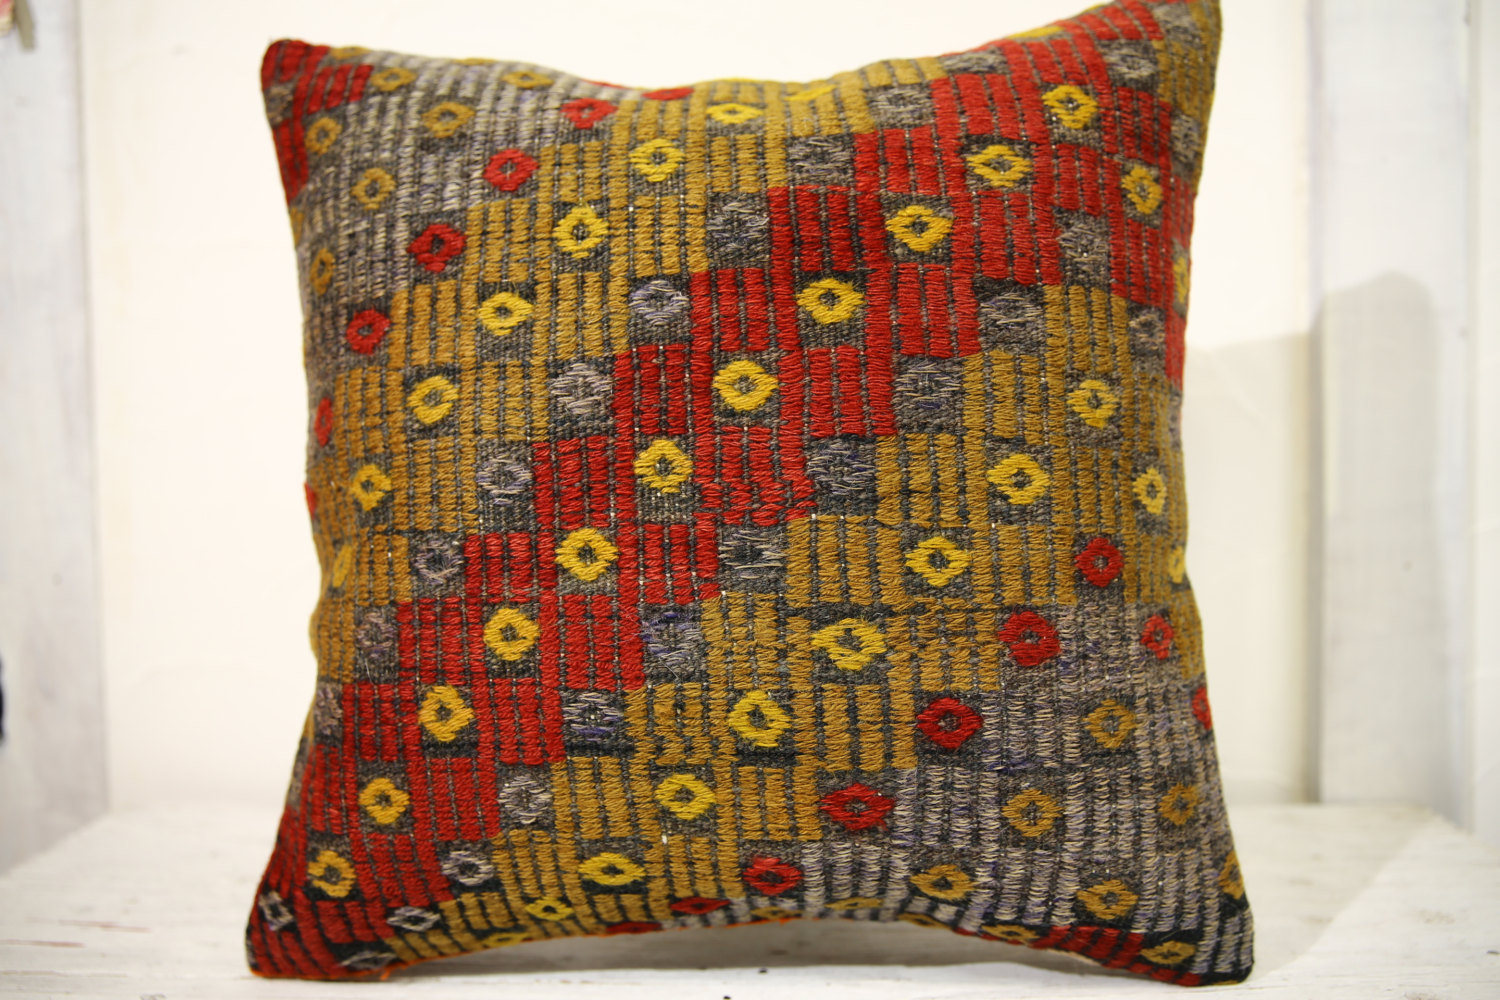 Kilim Pillows | 20x20 | Decorative Pillows | 689 | Accent Pillows, Kilim cushion